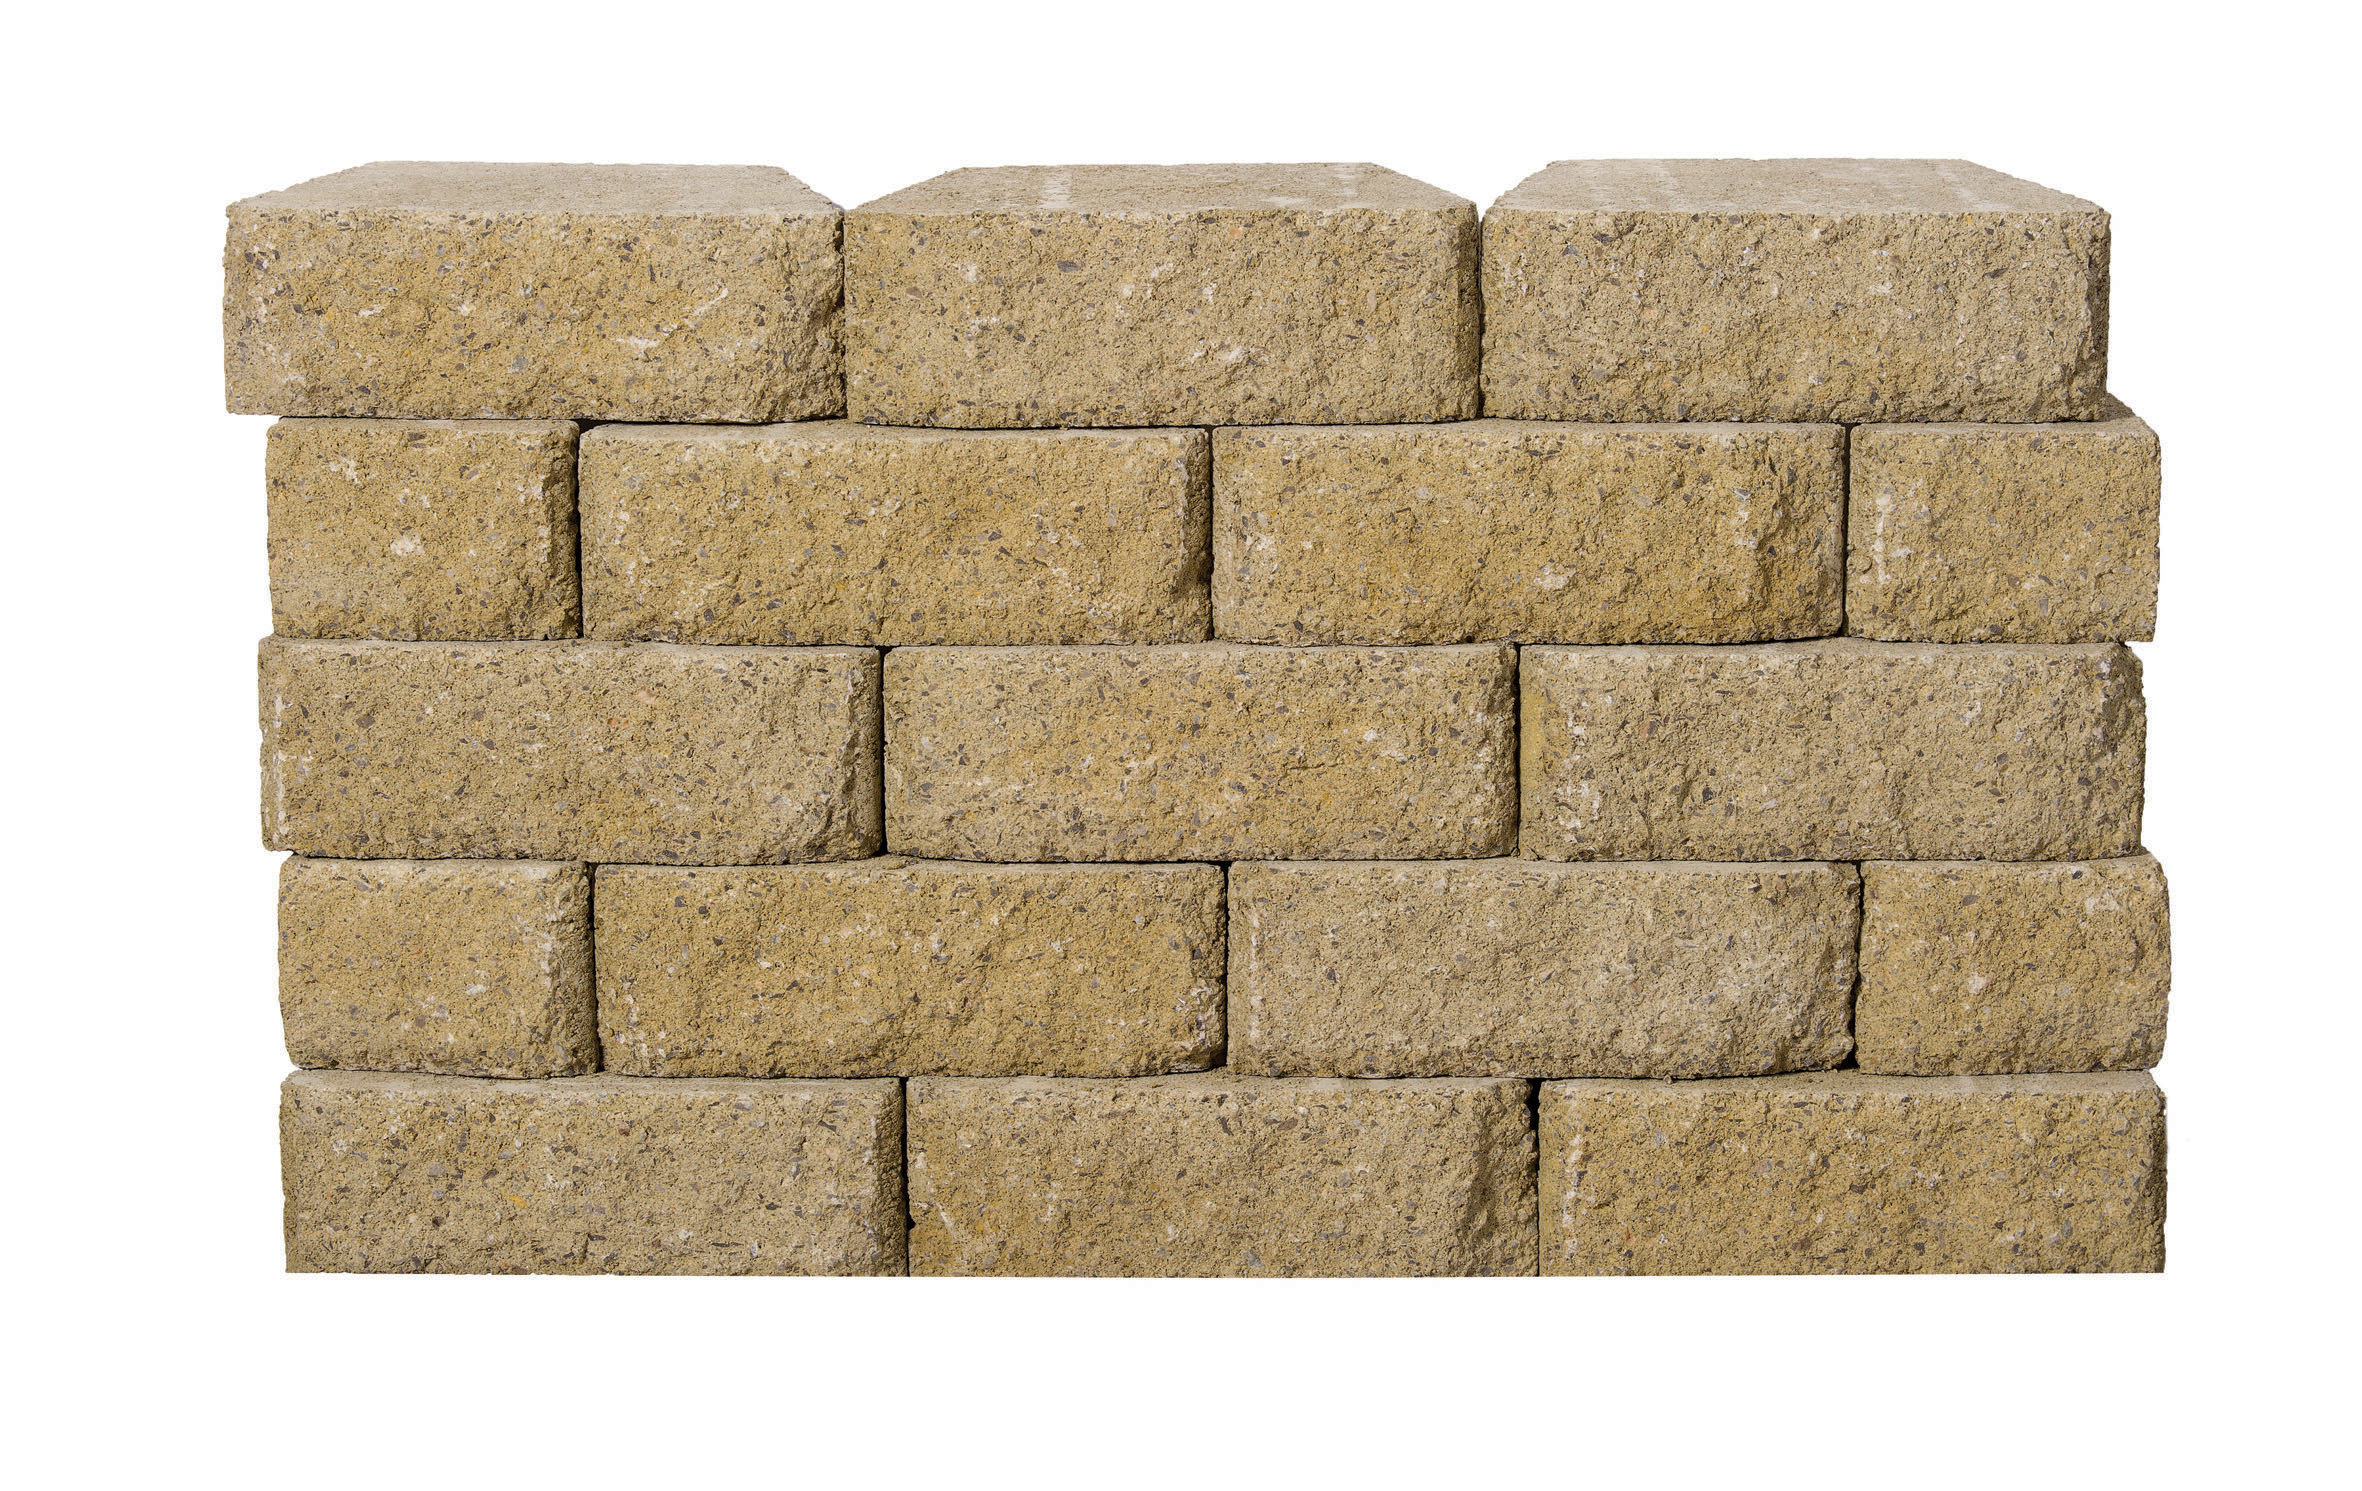 Wall Block Aspen Canelletto L295xD180xH100mm (Each)